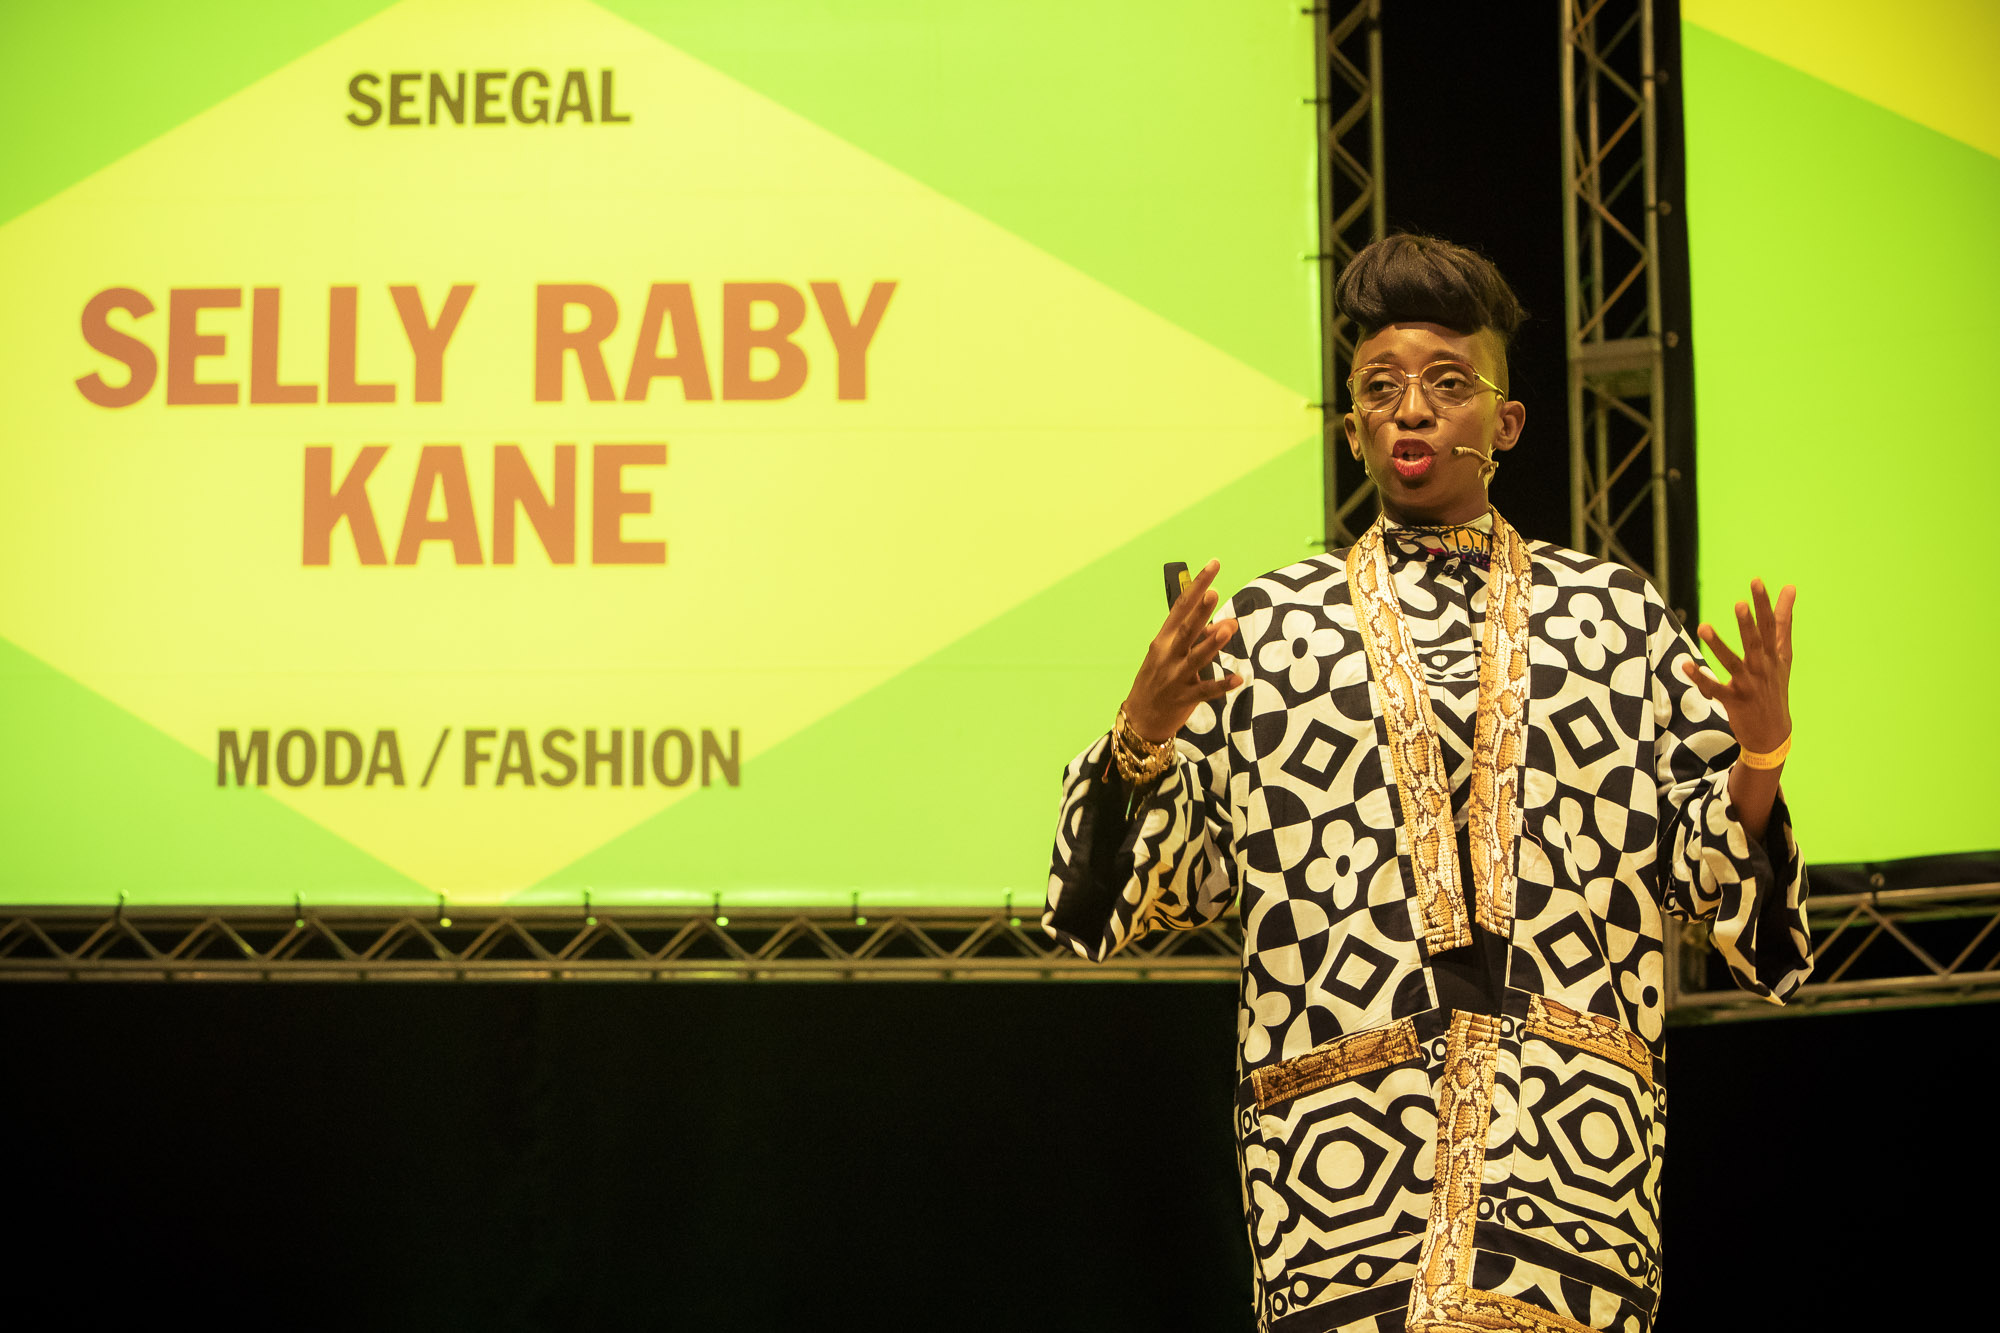 Selly Raby Kane, Senegal